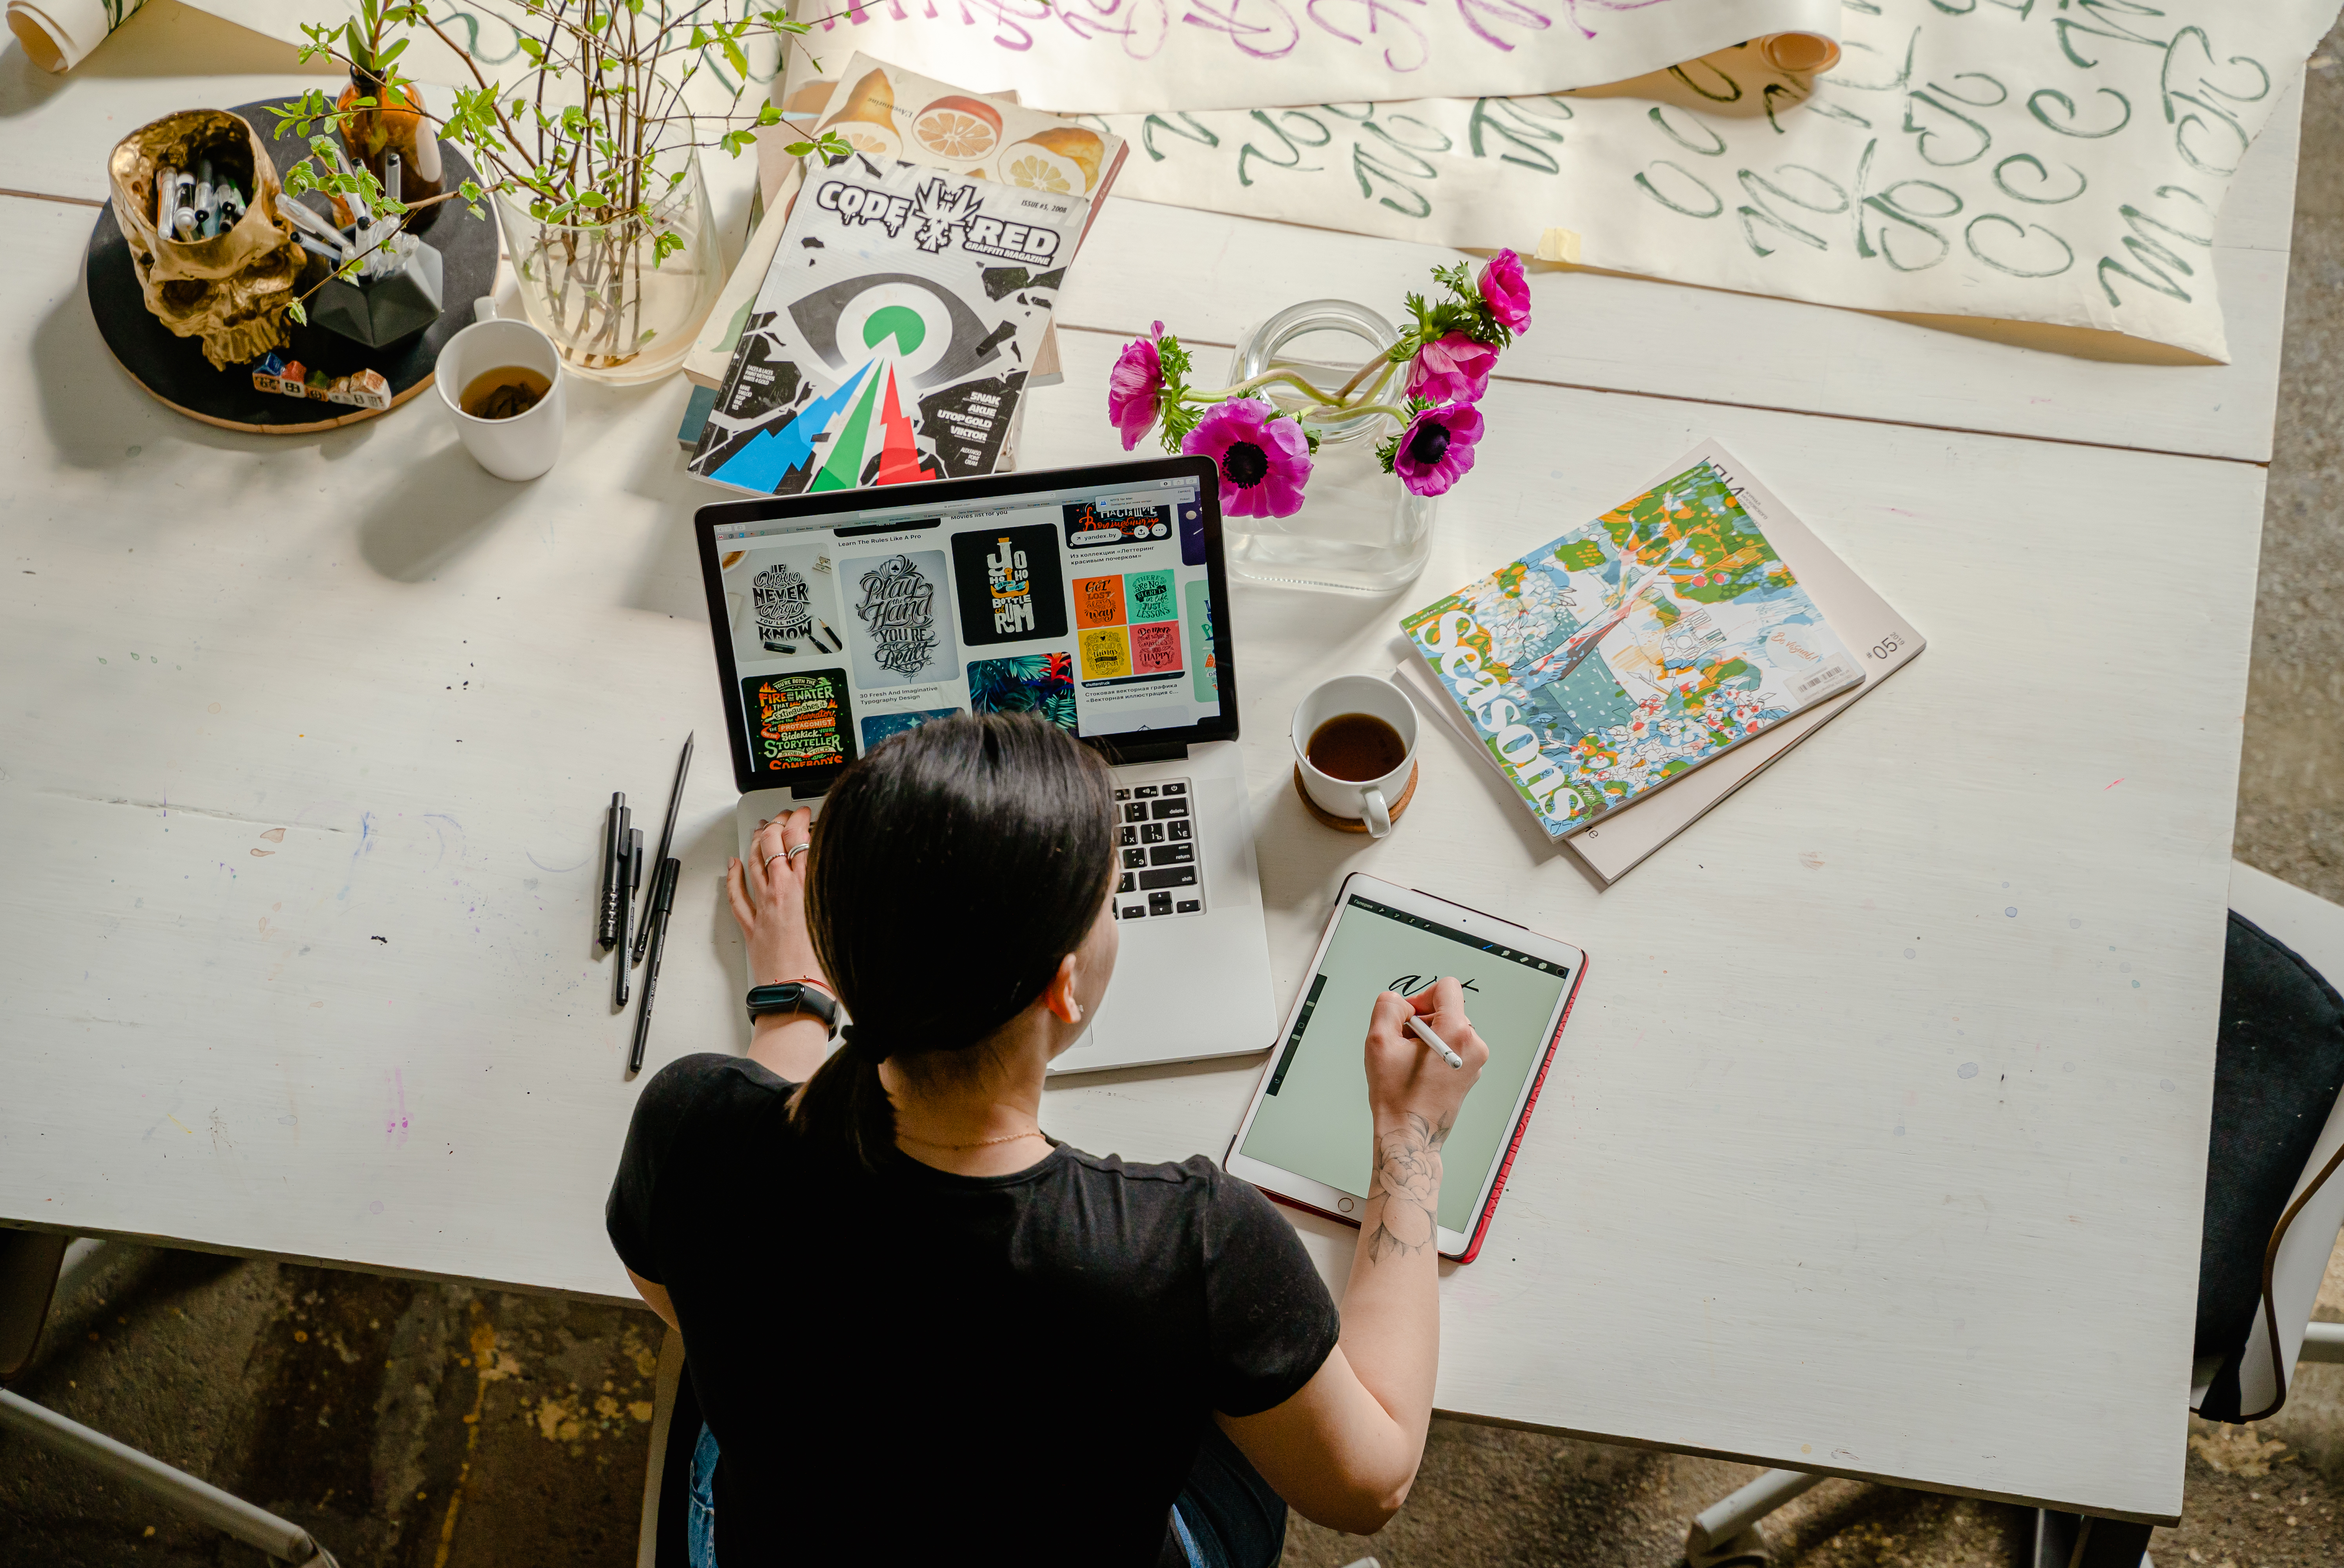 A person working as a digital designer